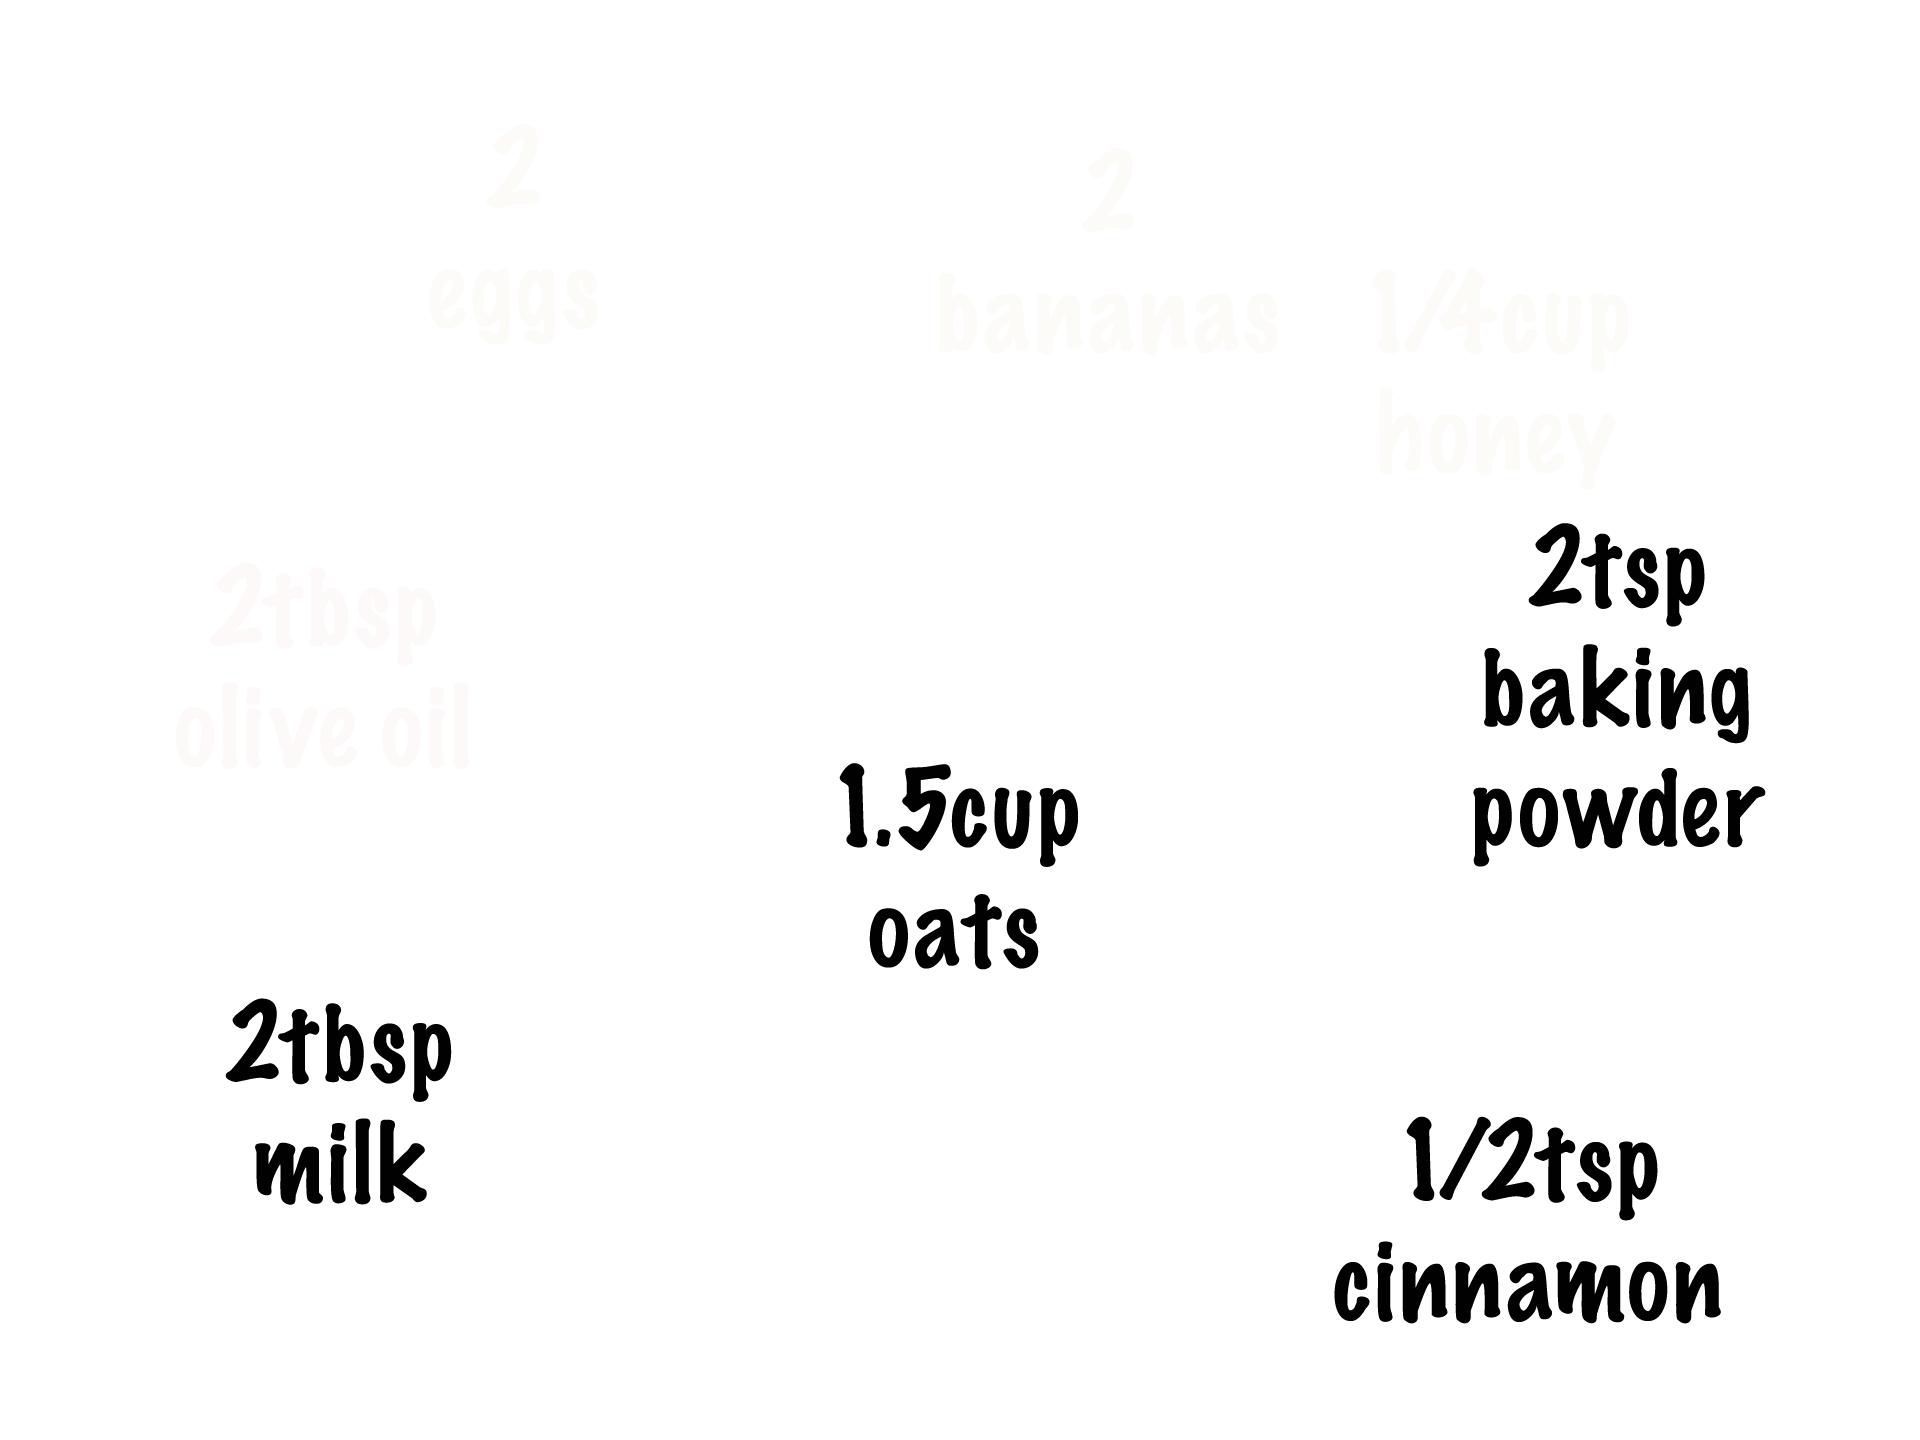 Oat_Banana_Ingredients_Text.png